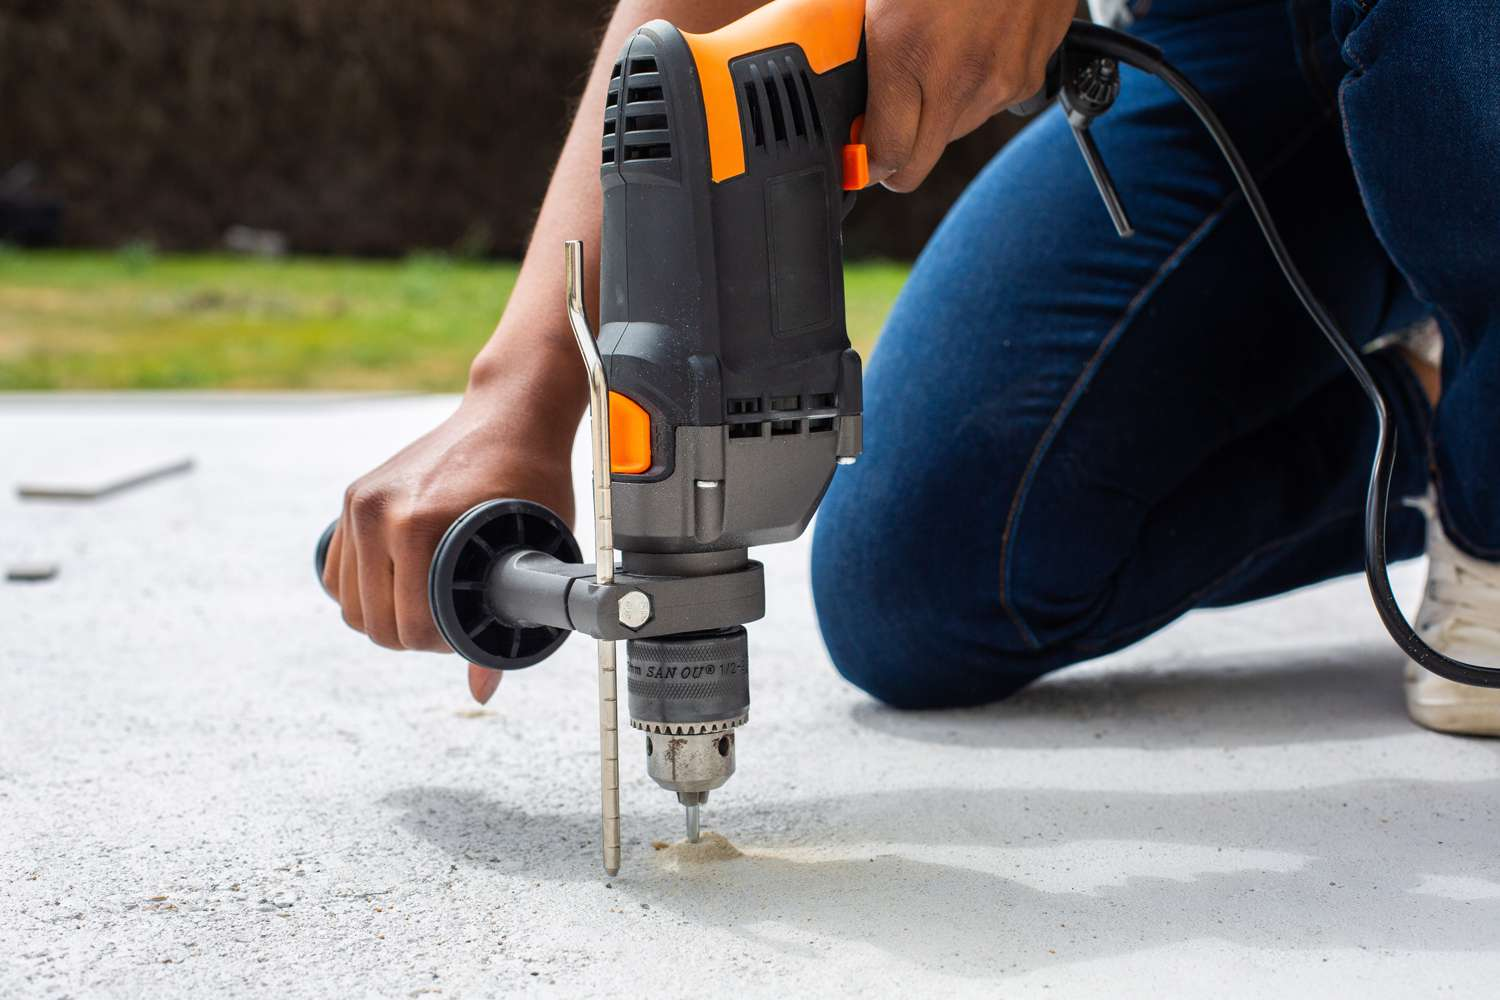 Hammer drill extending drilled hole into concrete